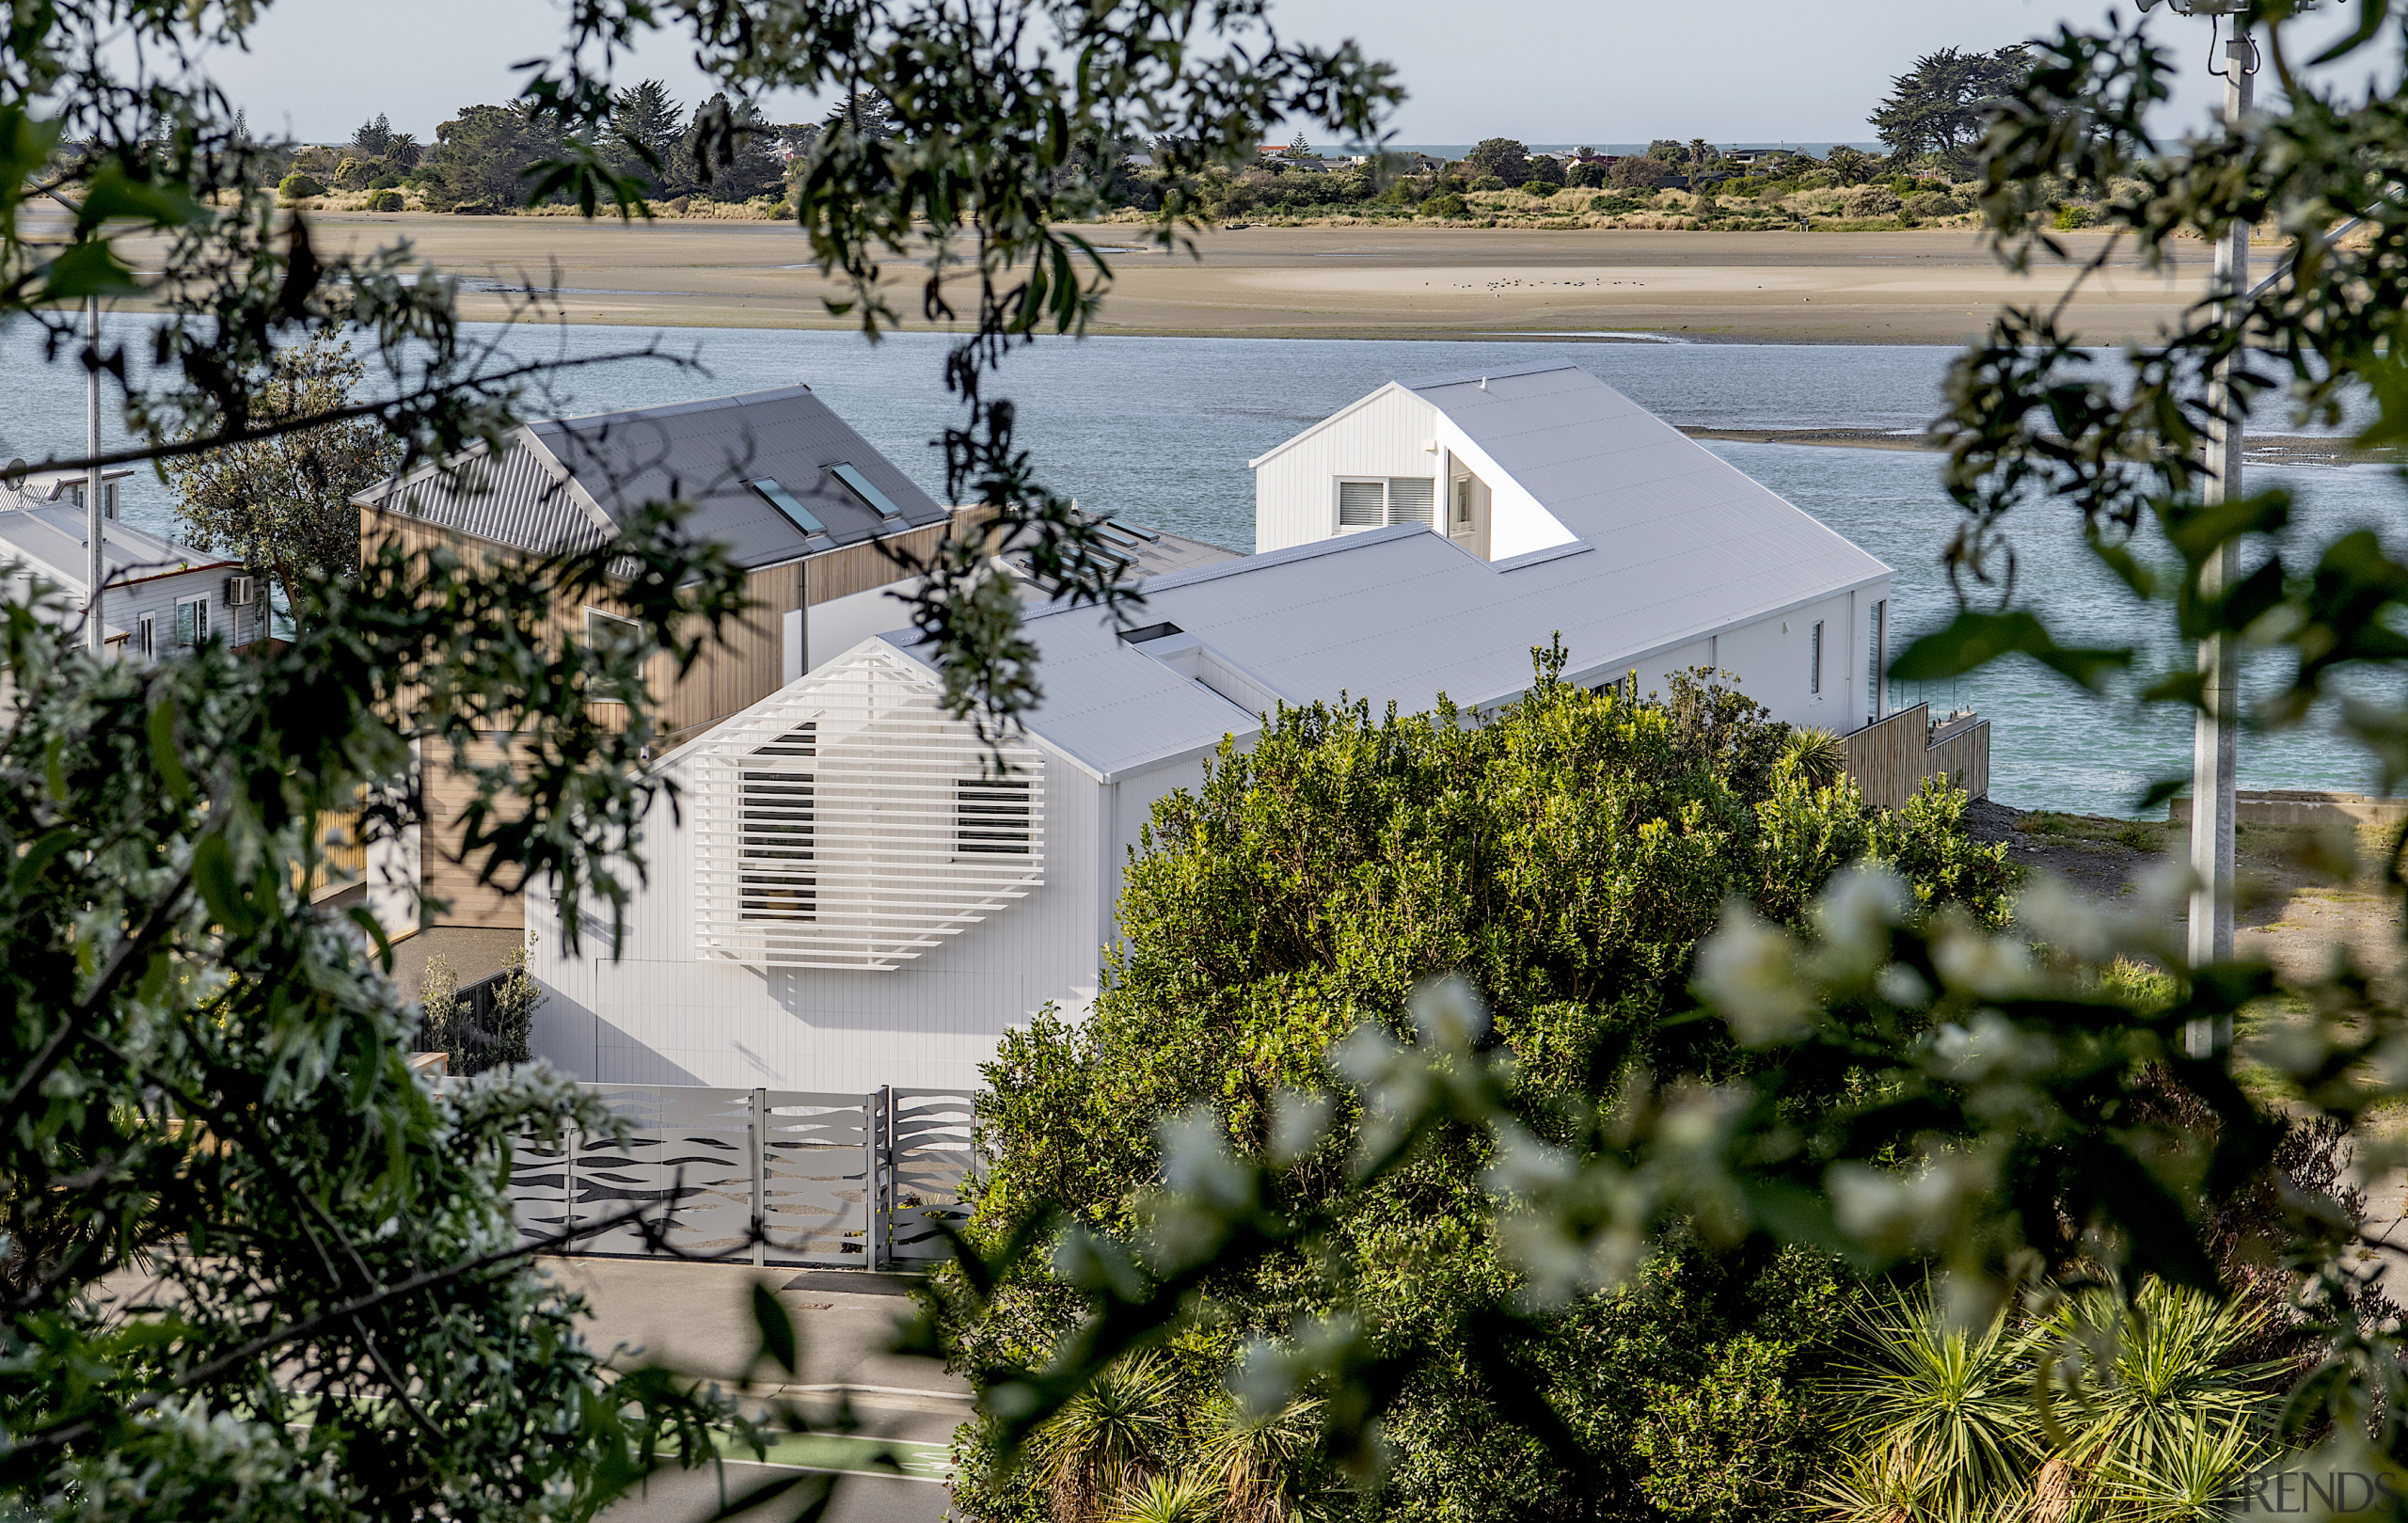 For their own home, architect Richard Dalman wanted